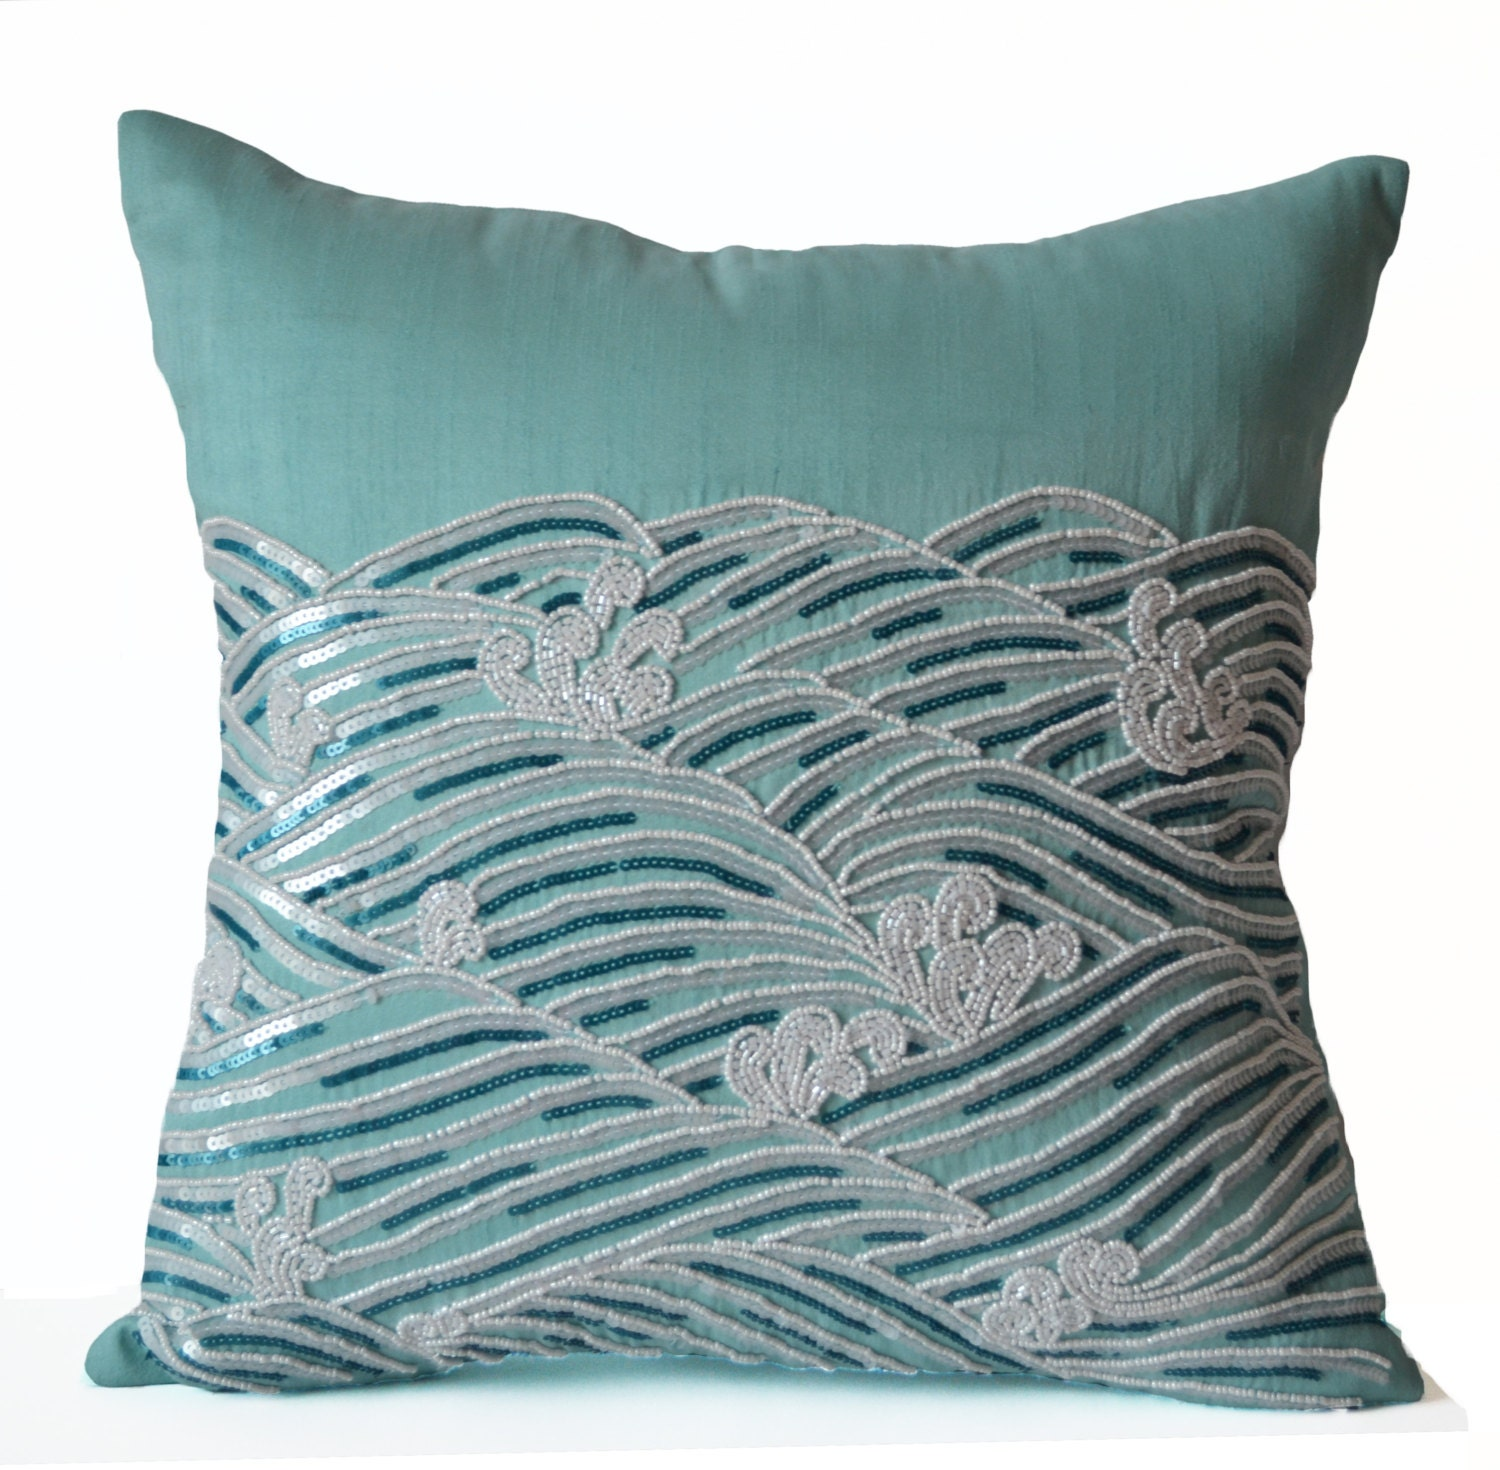 Modern Teal Decorative Throw Pillow : Decorative Pillow Cover Teal Throw Pillows Sequin Accent